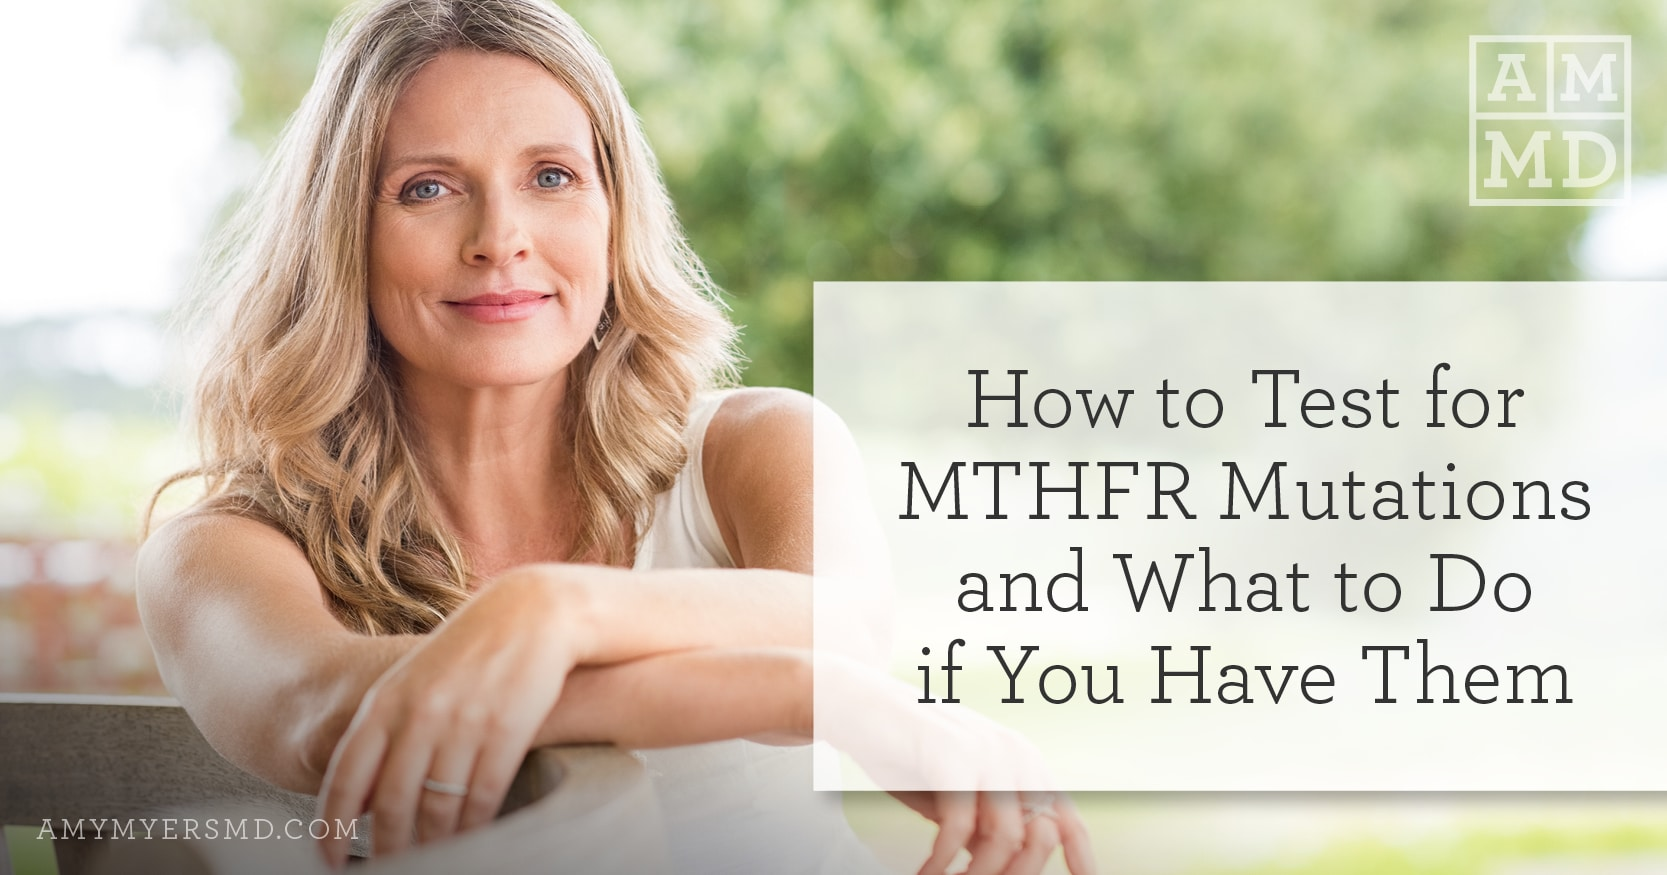 how to test for MTHFR